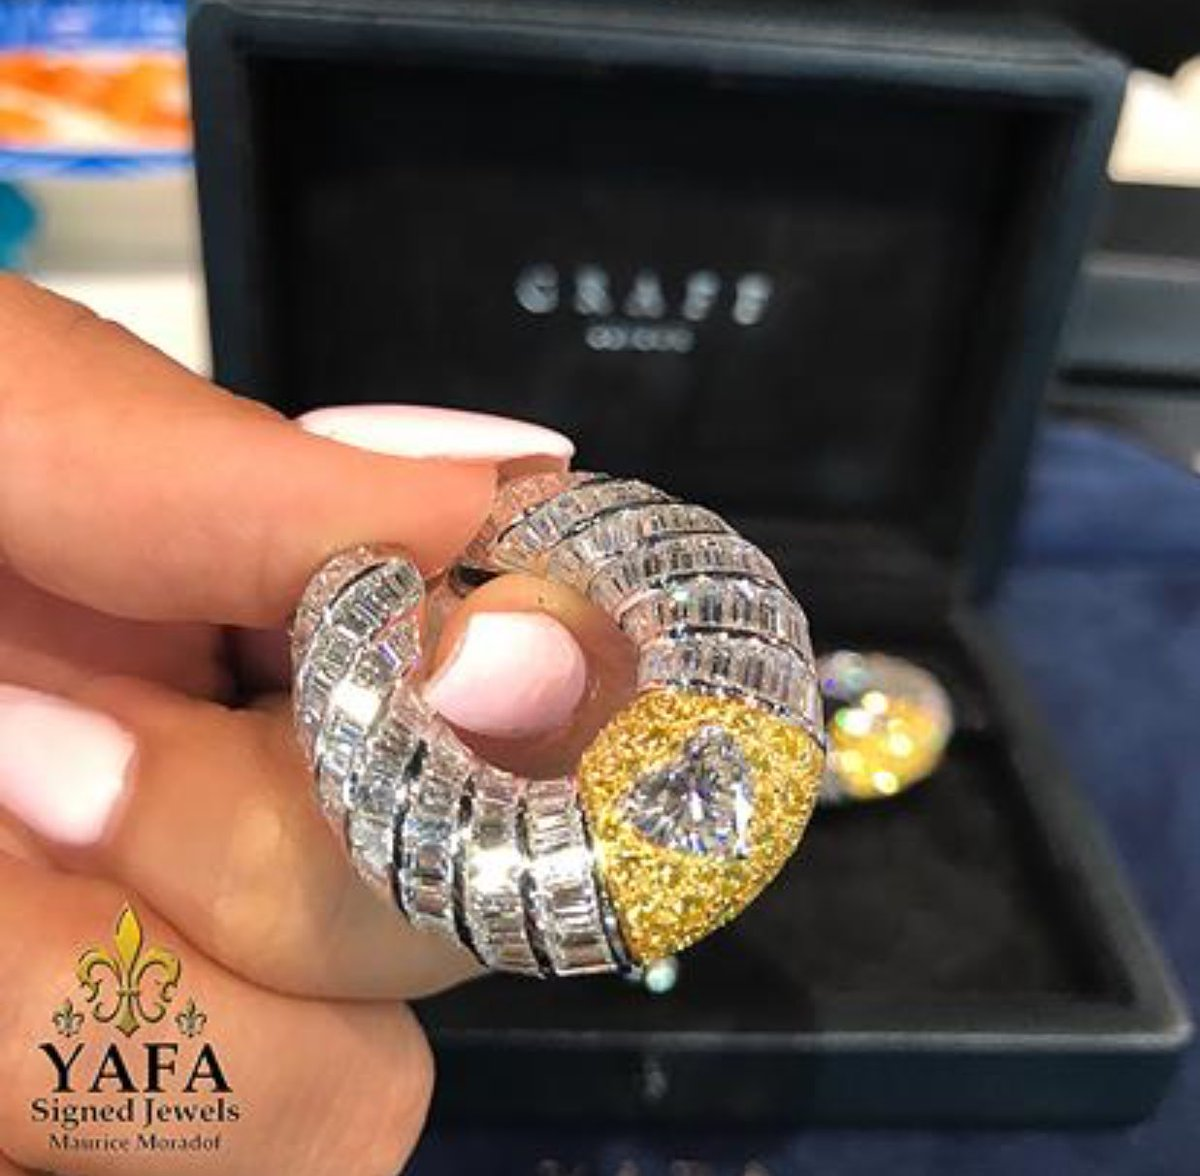 Yafa signed jewels new york ny 1stdibs page 4 -  Vintagesignedjewels Vintage Jewels Graff Http Vintagesignedjewels Com Pic Twitter Com Nhs07ir8vo